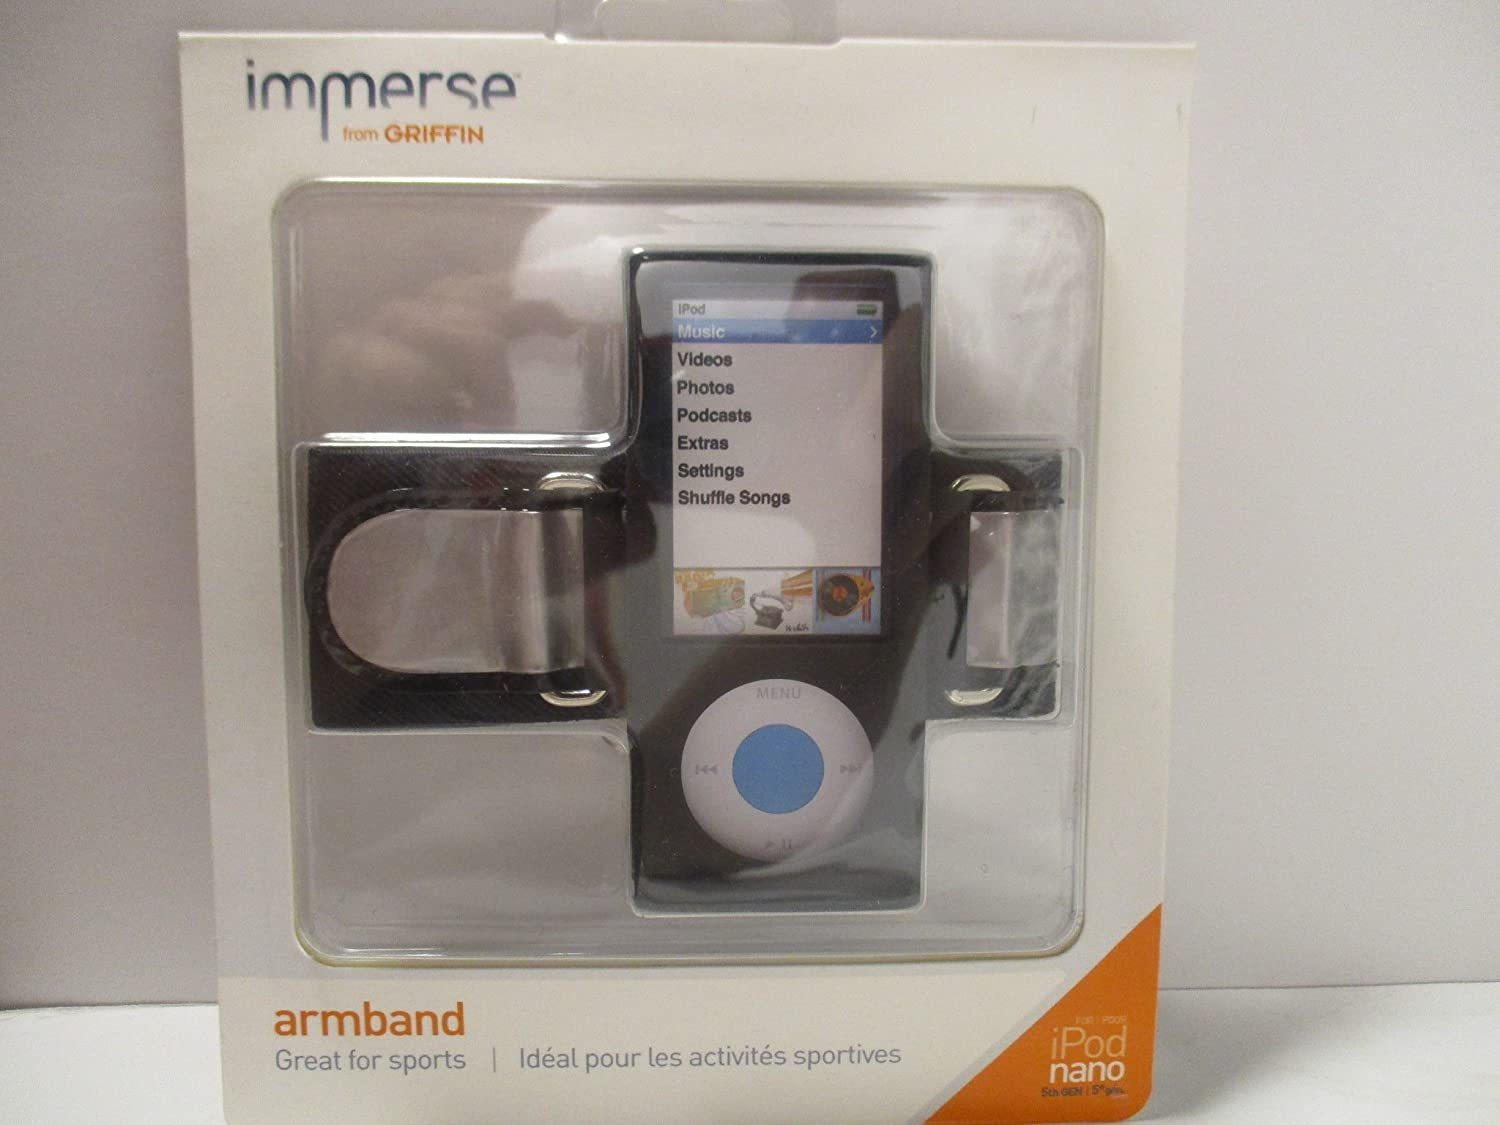 Griffin Immerse Armband and Case for iPod Nano 5th Gen Black